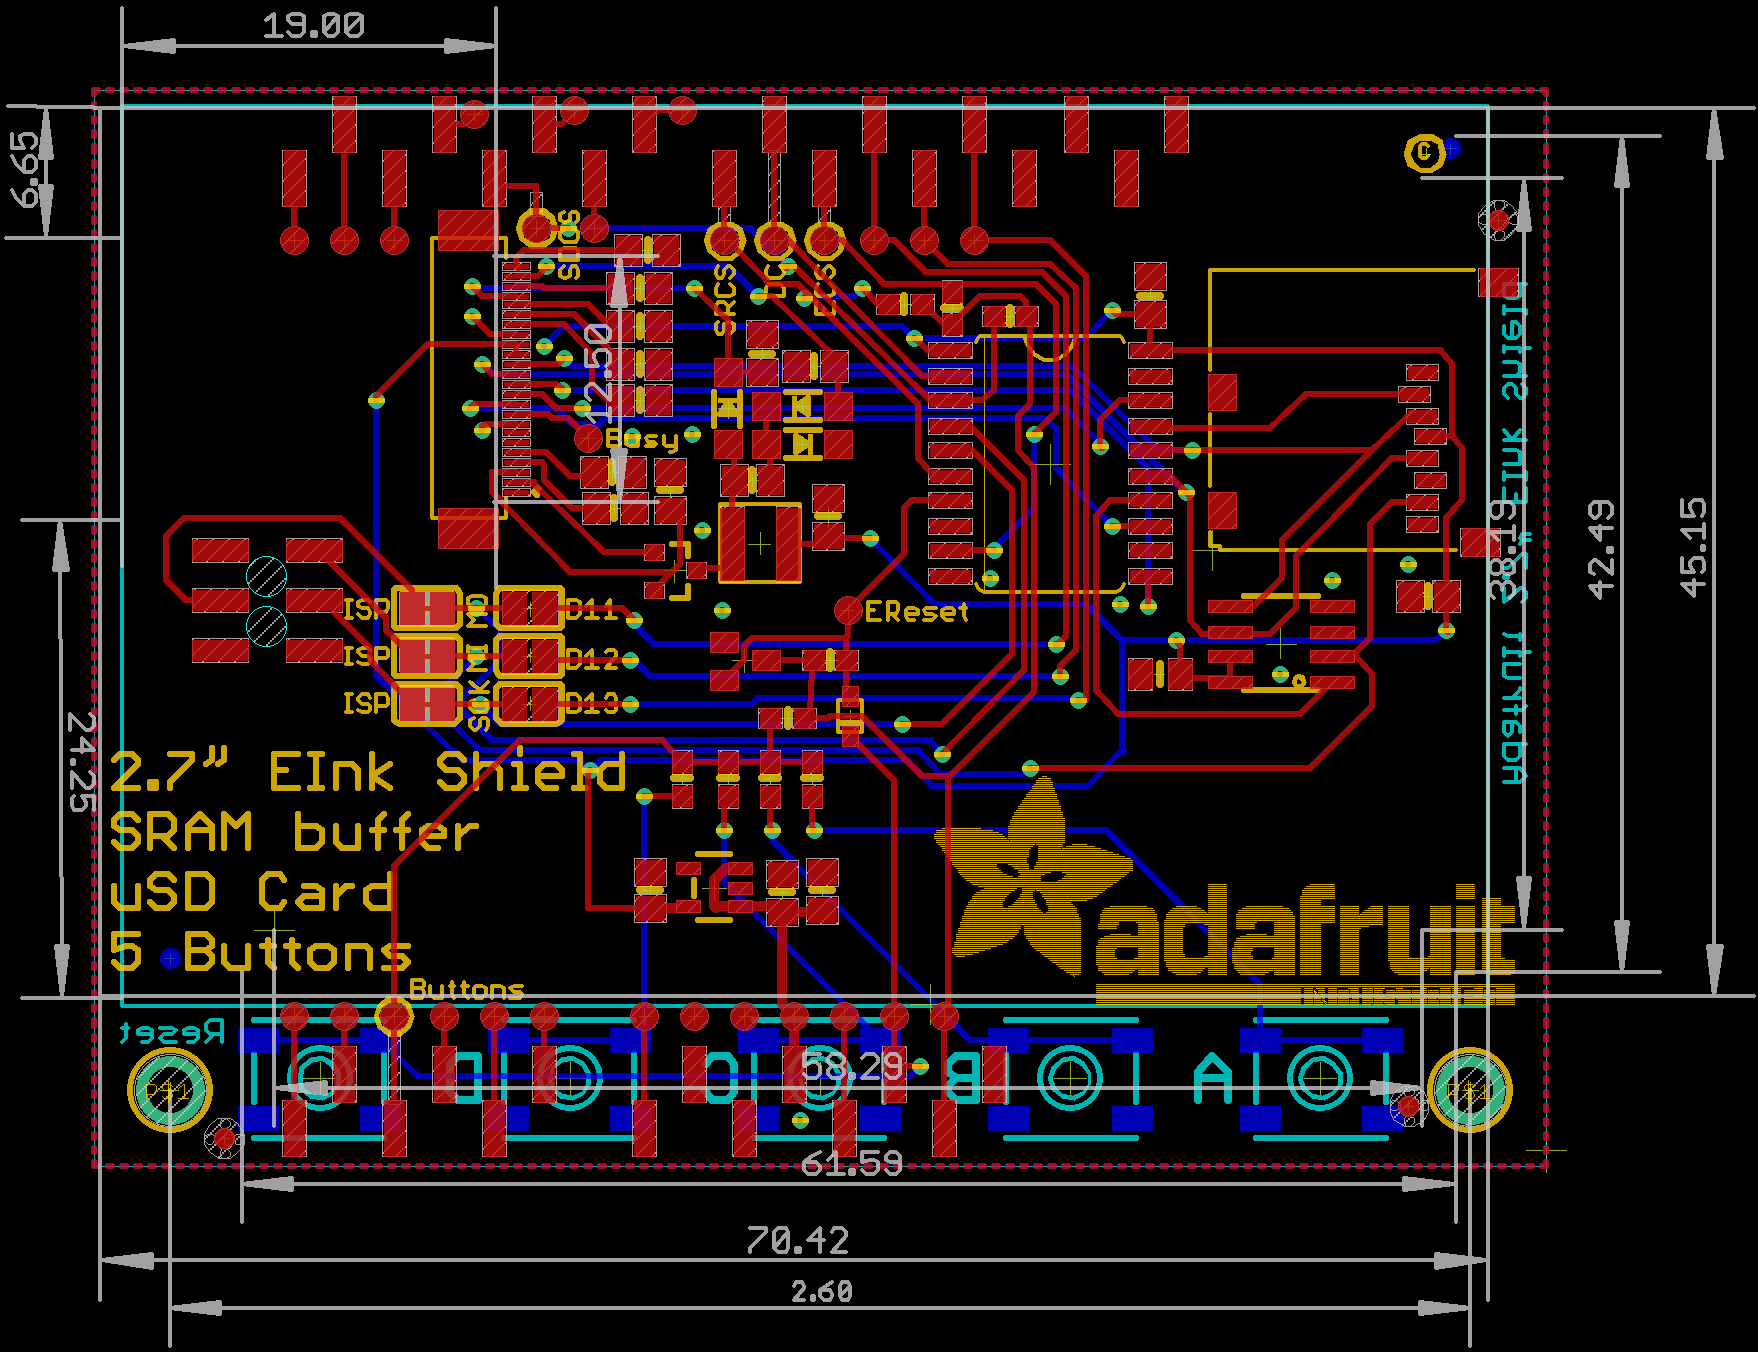 adafruit_products_2-7-in-eink-shield-fab-print.png